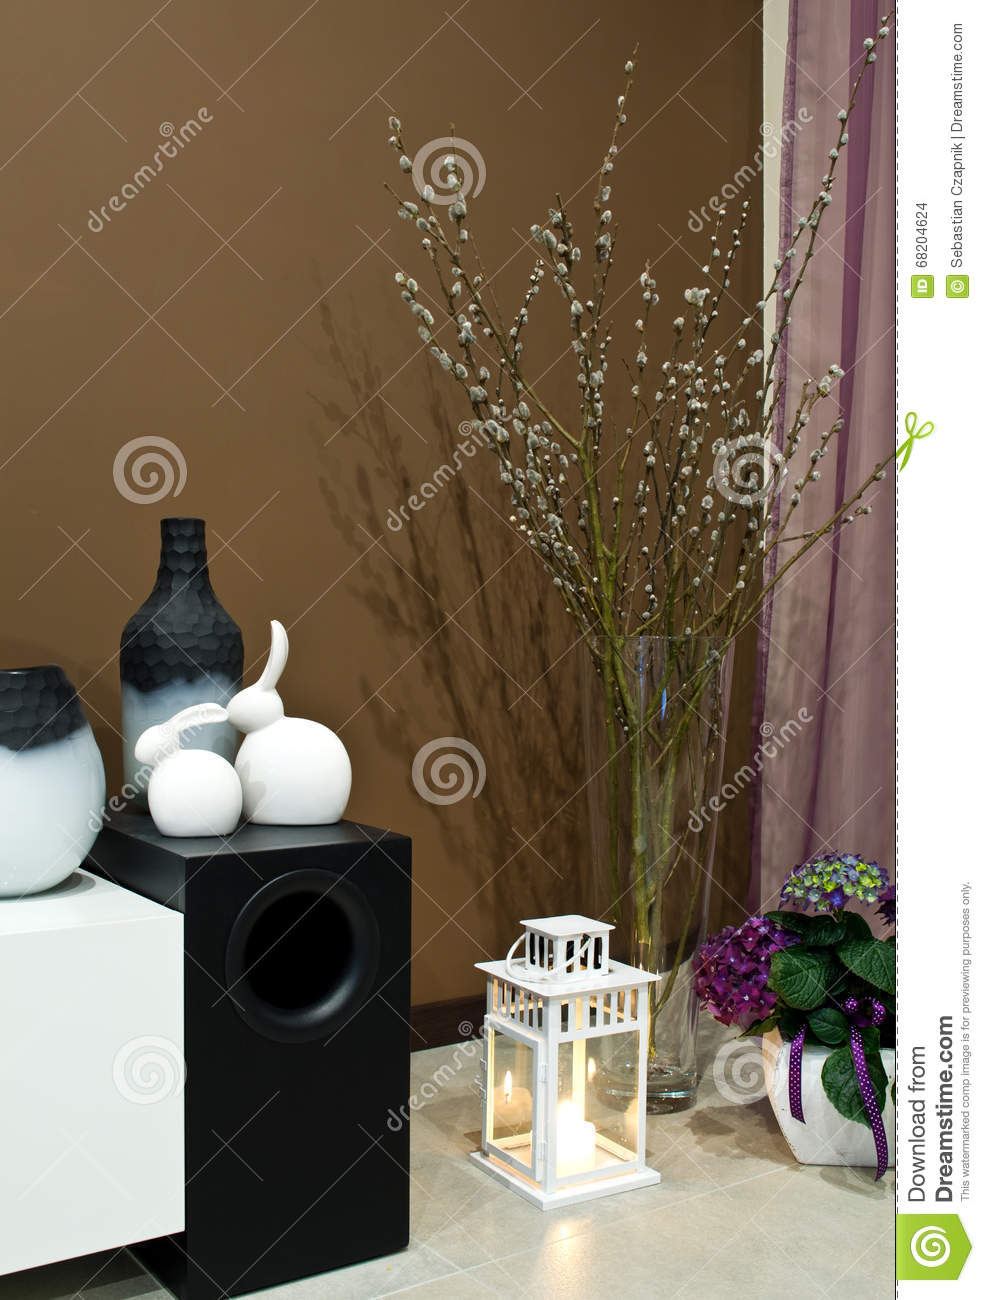 Bass Branches Bunnies Concept Corner Decorated Decoration Easter Flowers Home Hydrangea Living Loudspeaker Nicely Room